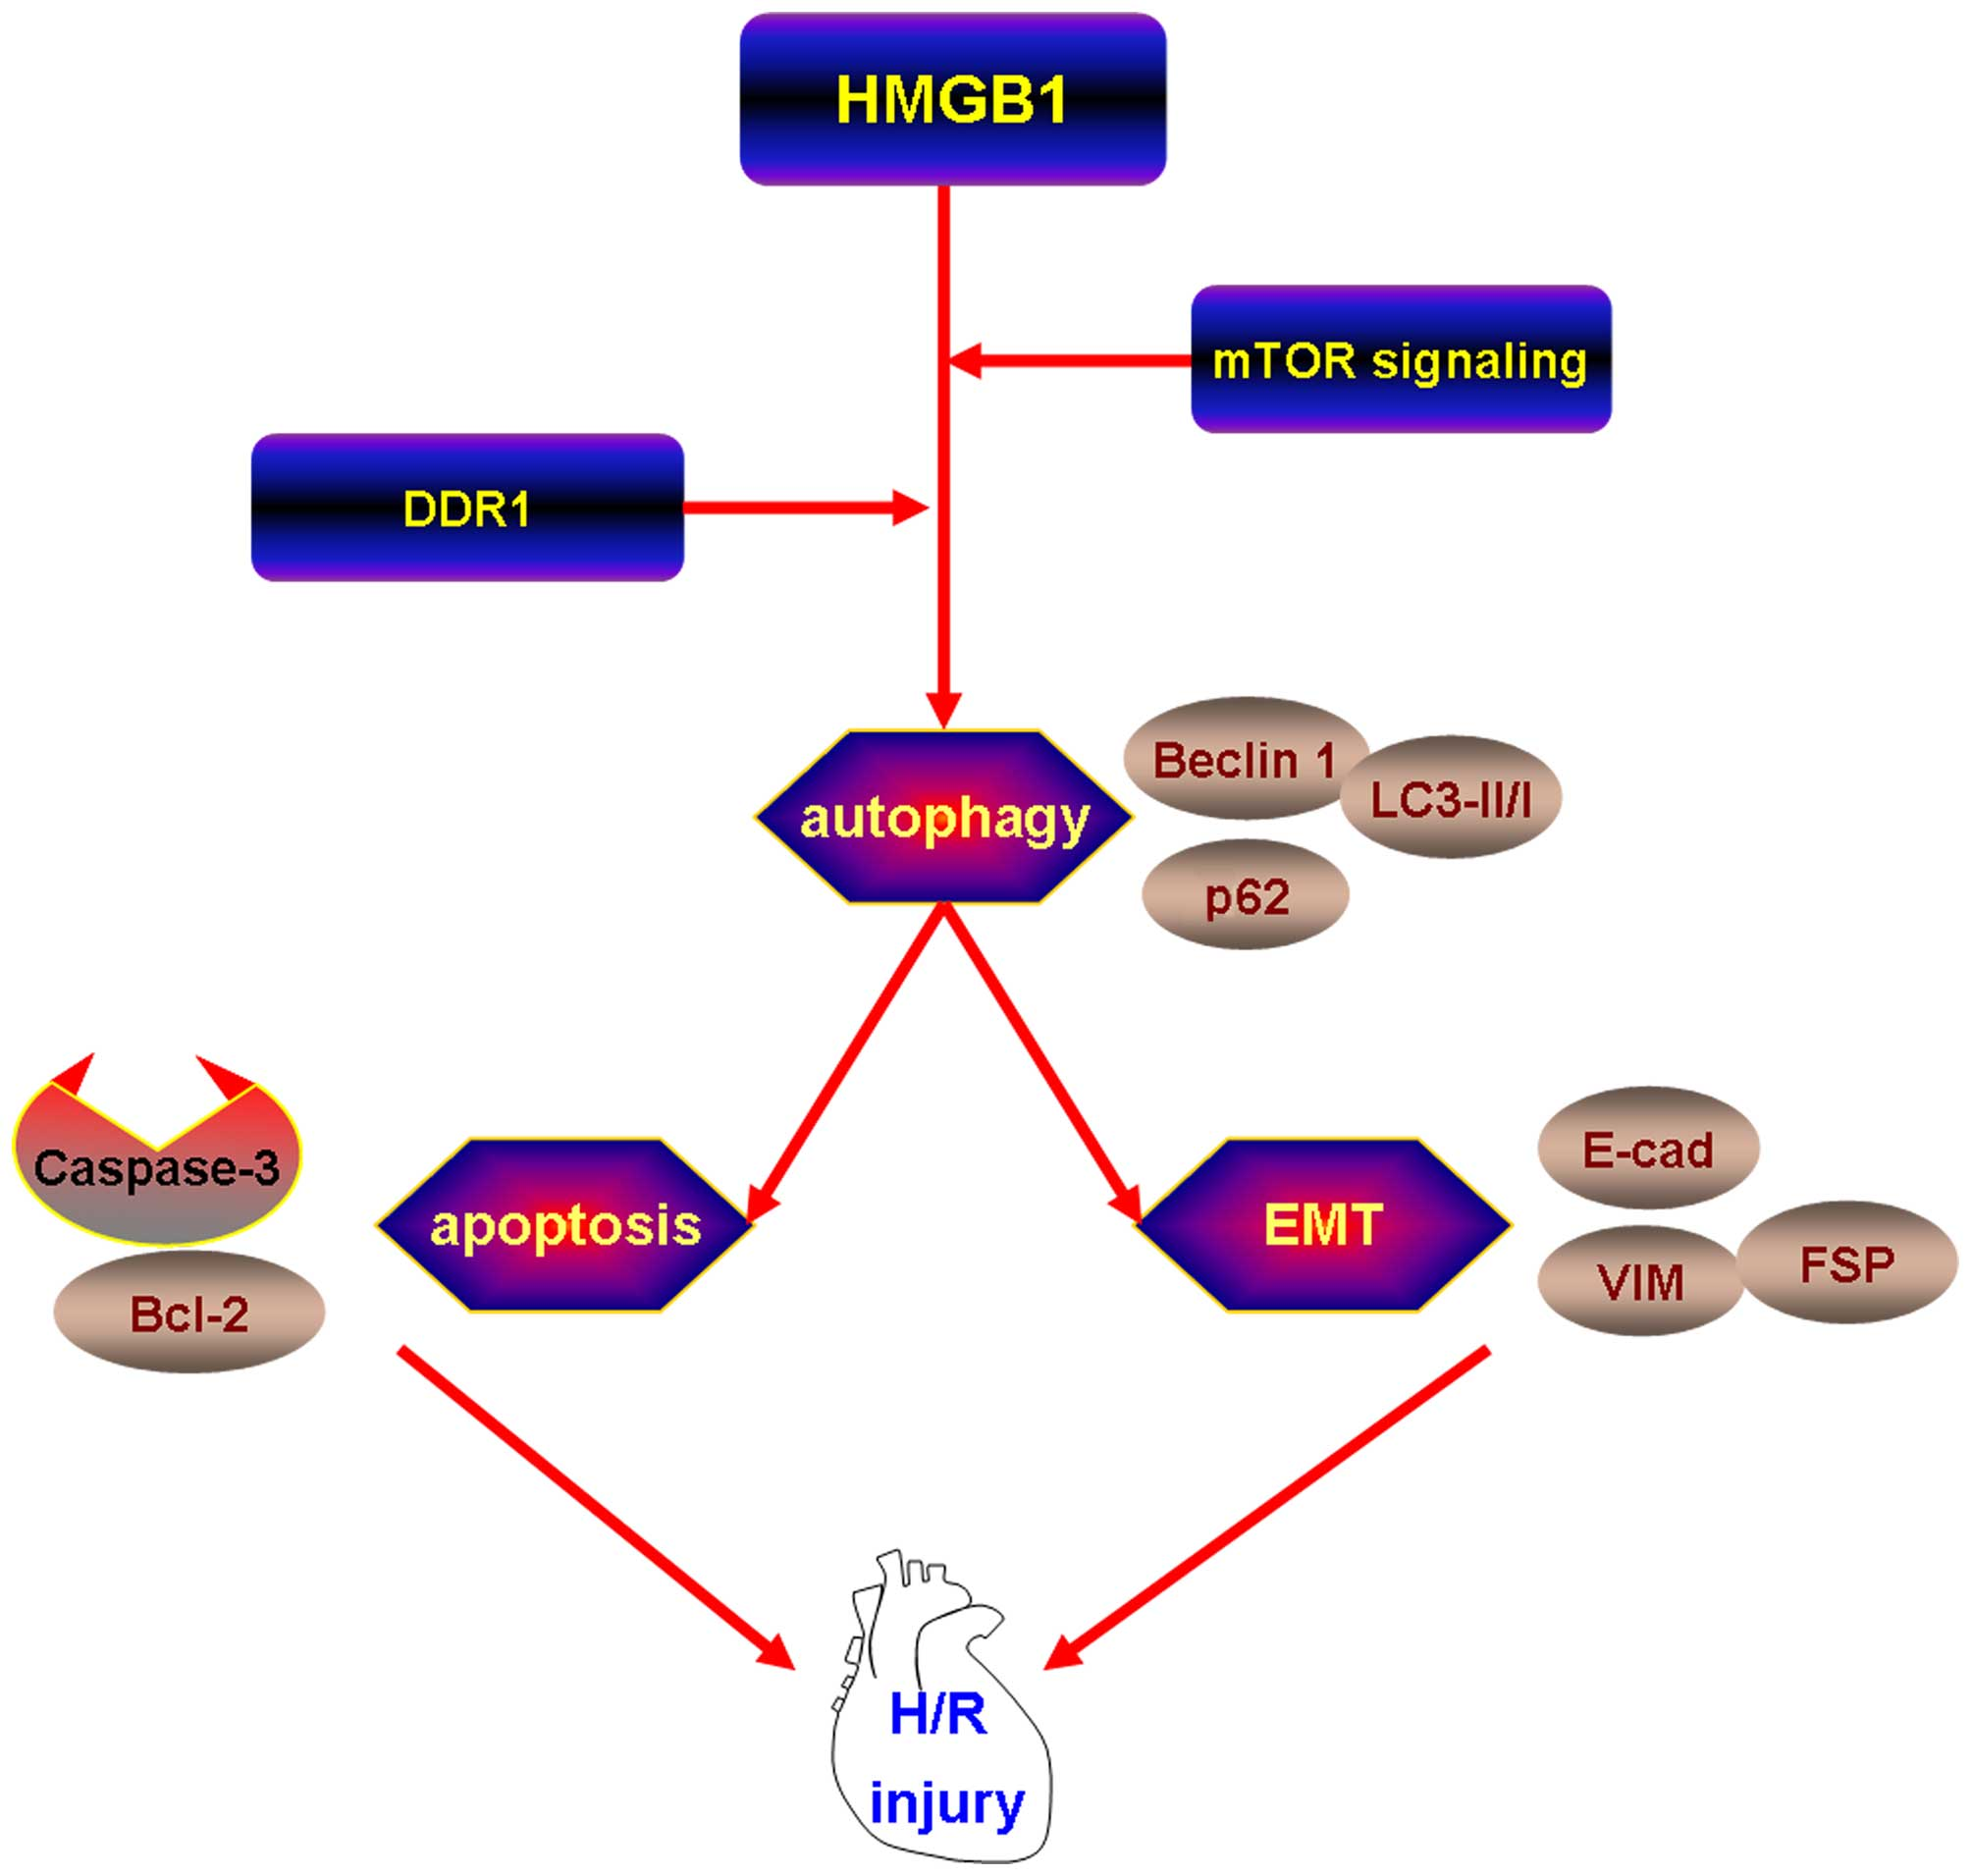 HMGB1 induces apoptosis and EMT in association with increased ...